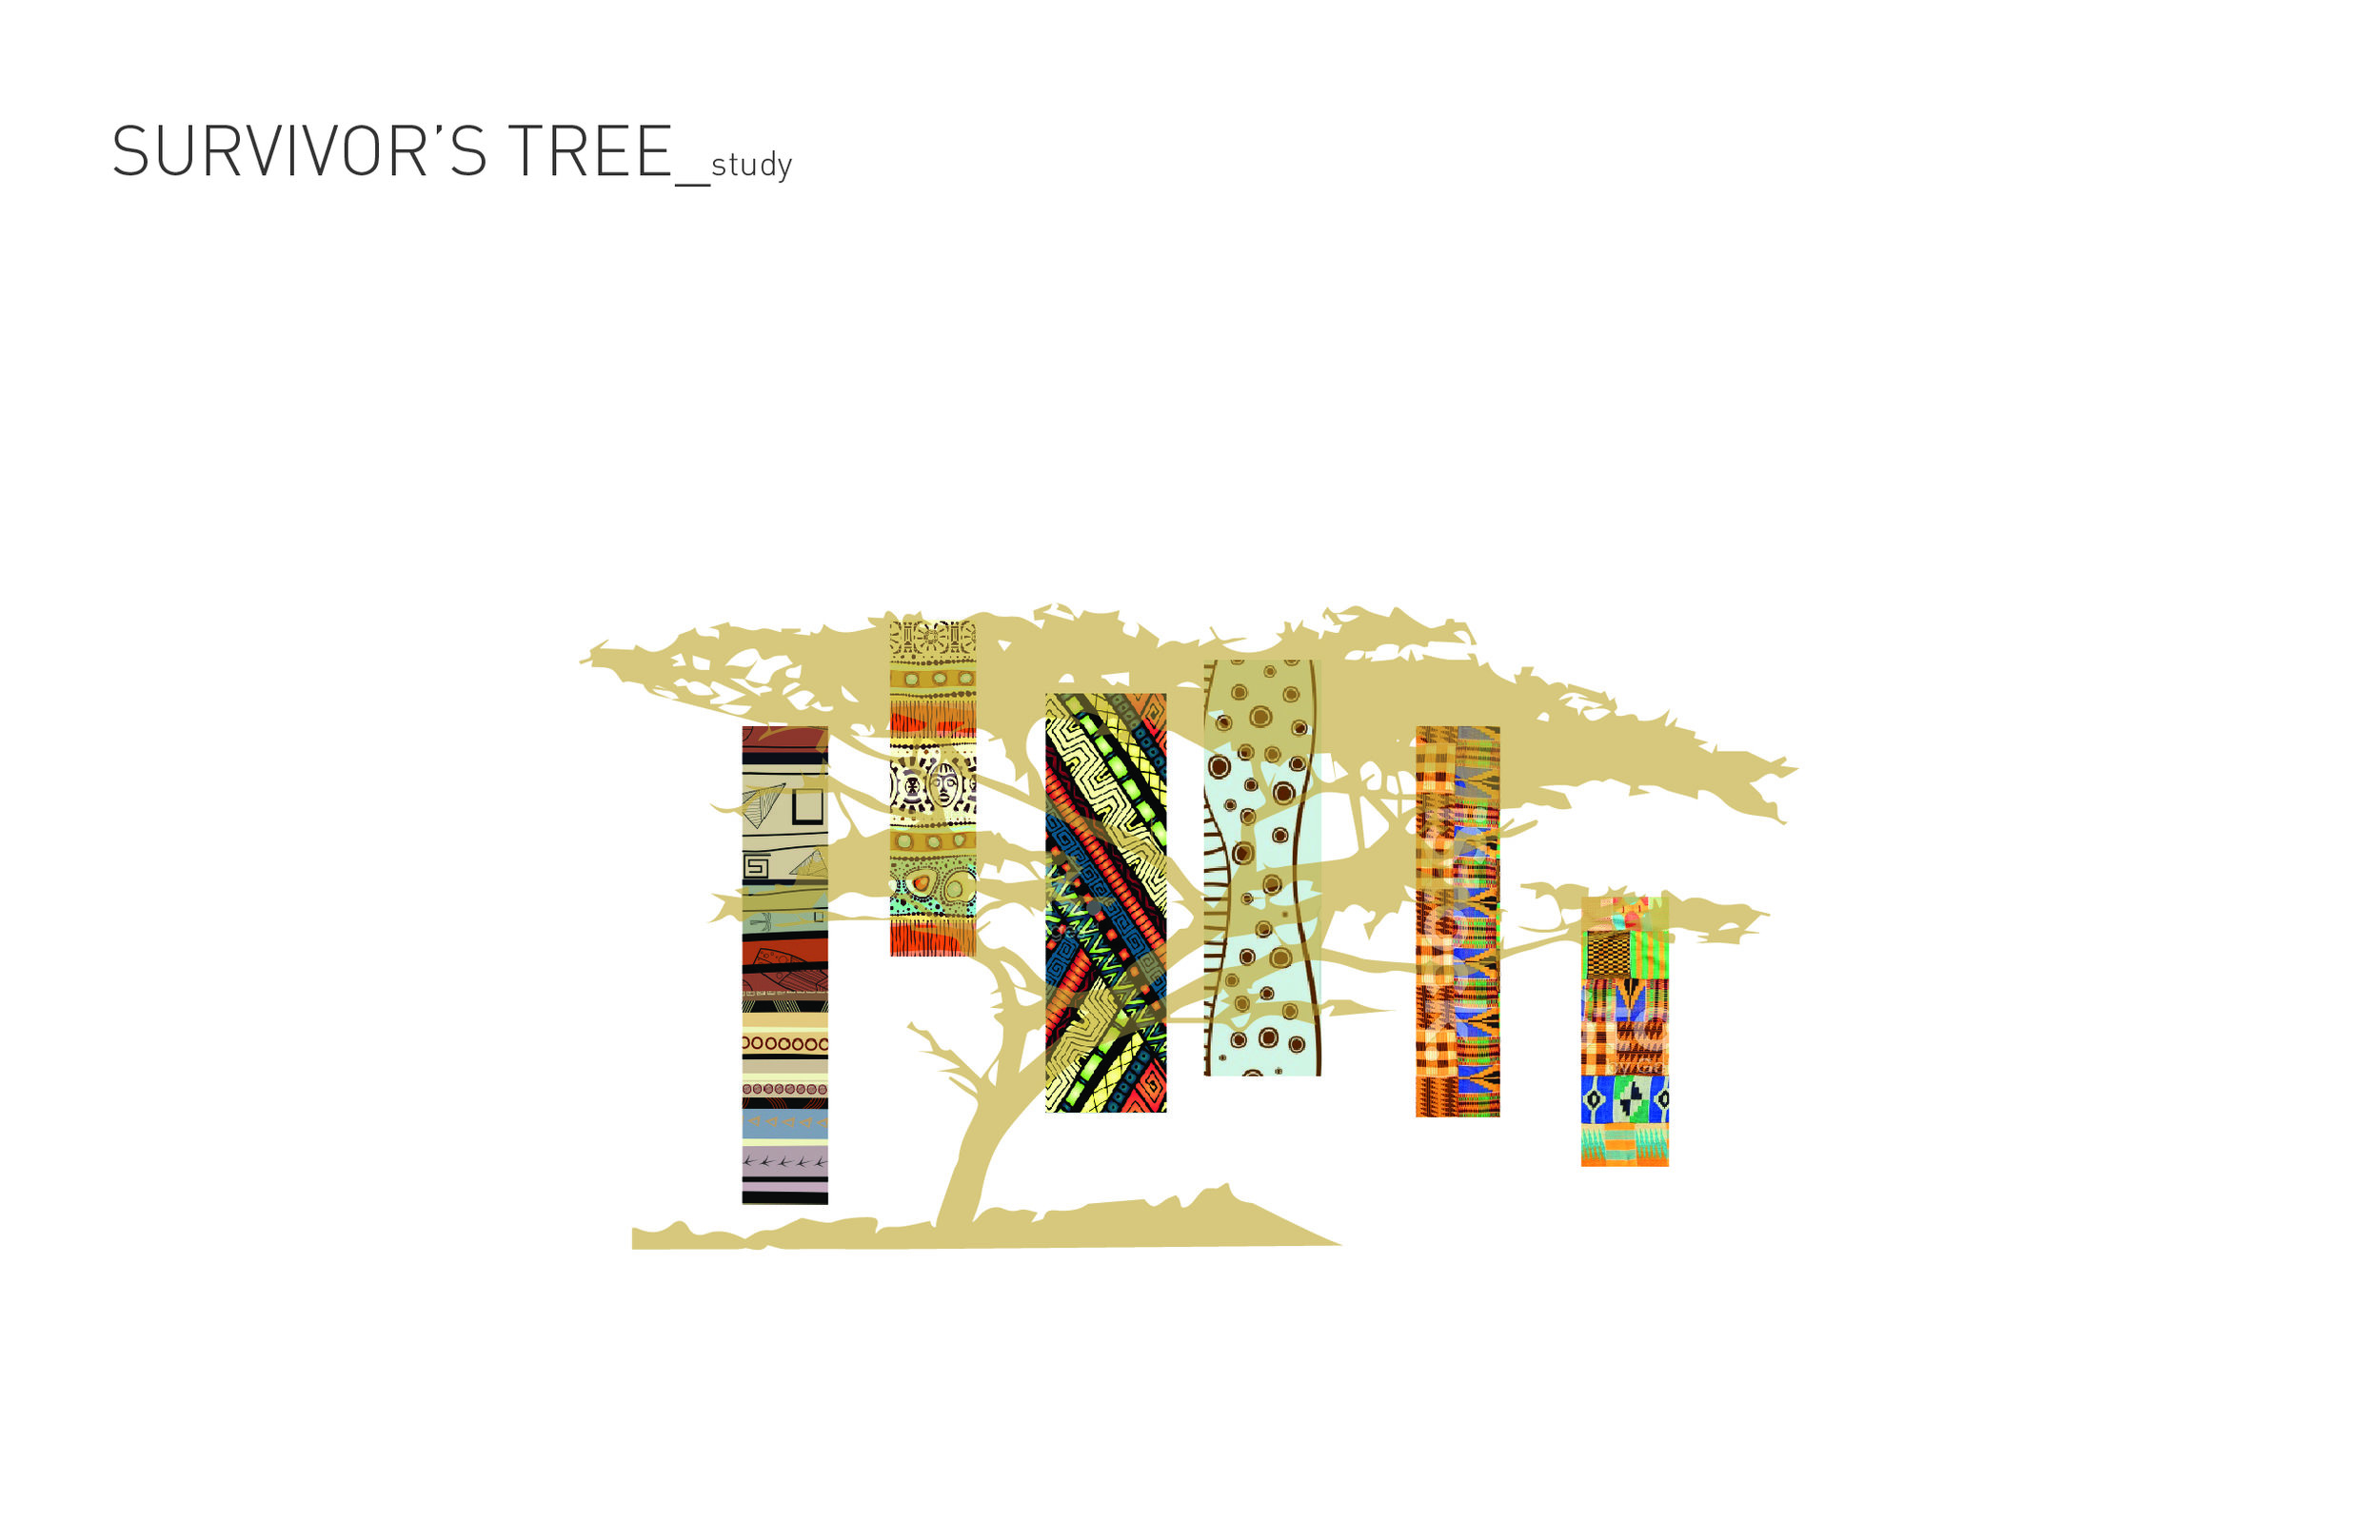 The client requested that we include a photo of the Survivor's Tree in the brochure. It became a central motif in the brochure. Here I've used it in a graphical way to show how textiles will become a part of the overarching concept of this piece.